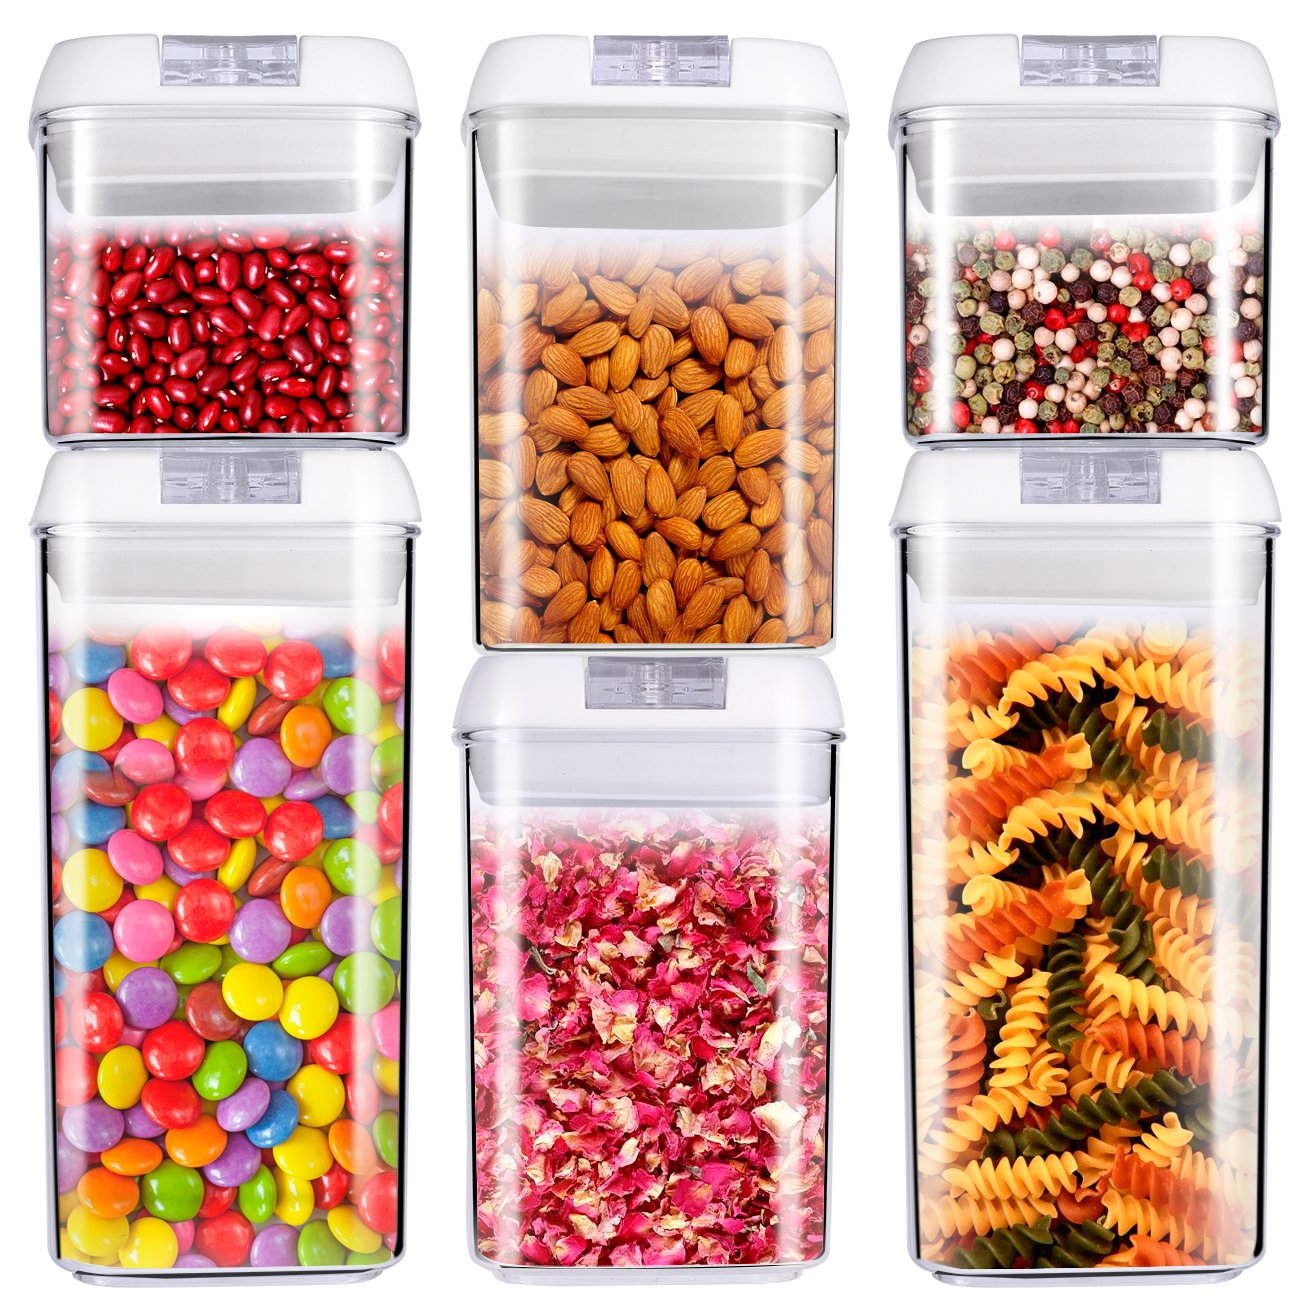 ME.FAN Air-Tight Food Storage Container Set - 6-Piece Set - Durable Plastic - BPA Free - Clear Containers with White Lids by ME.FAN